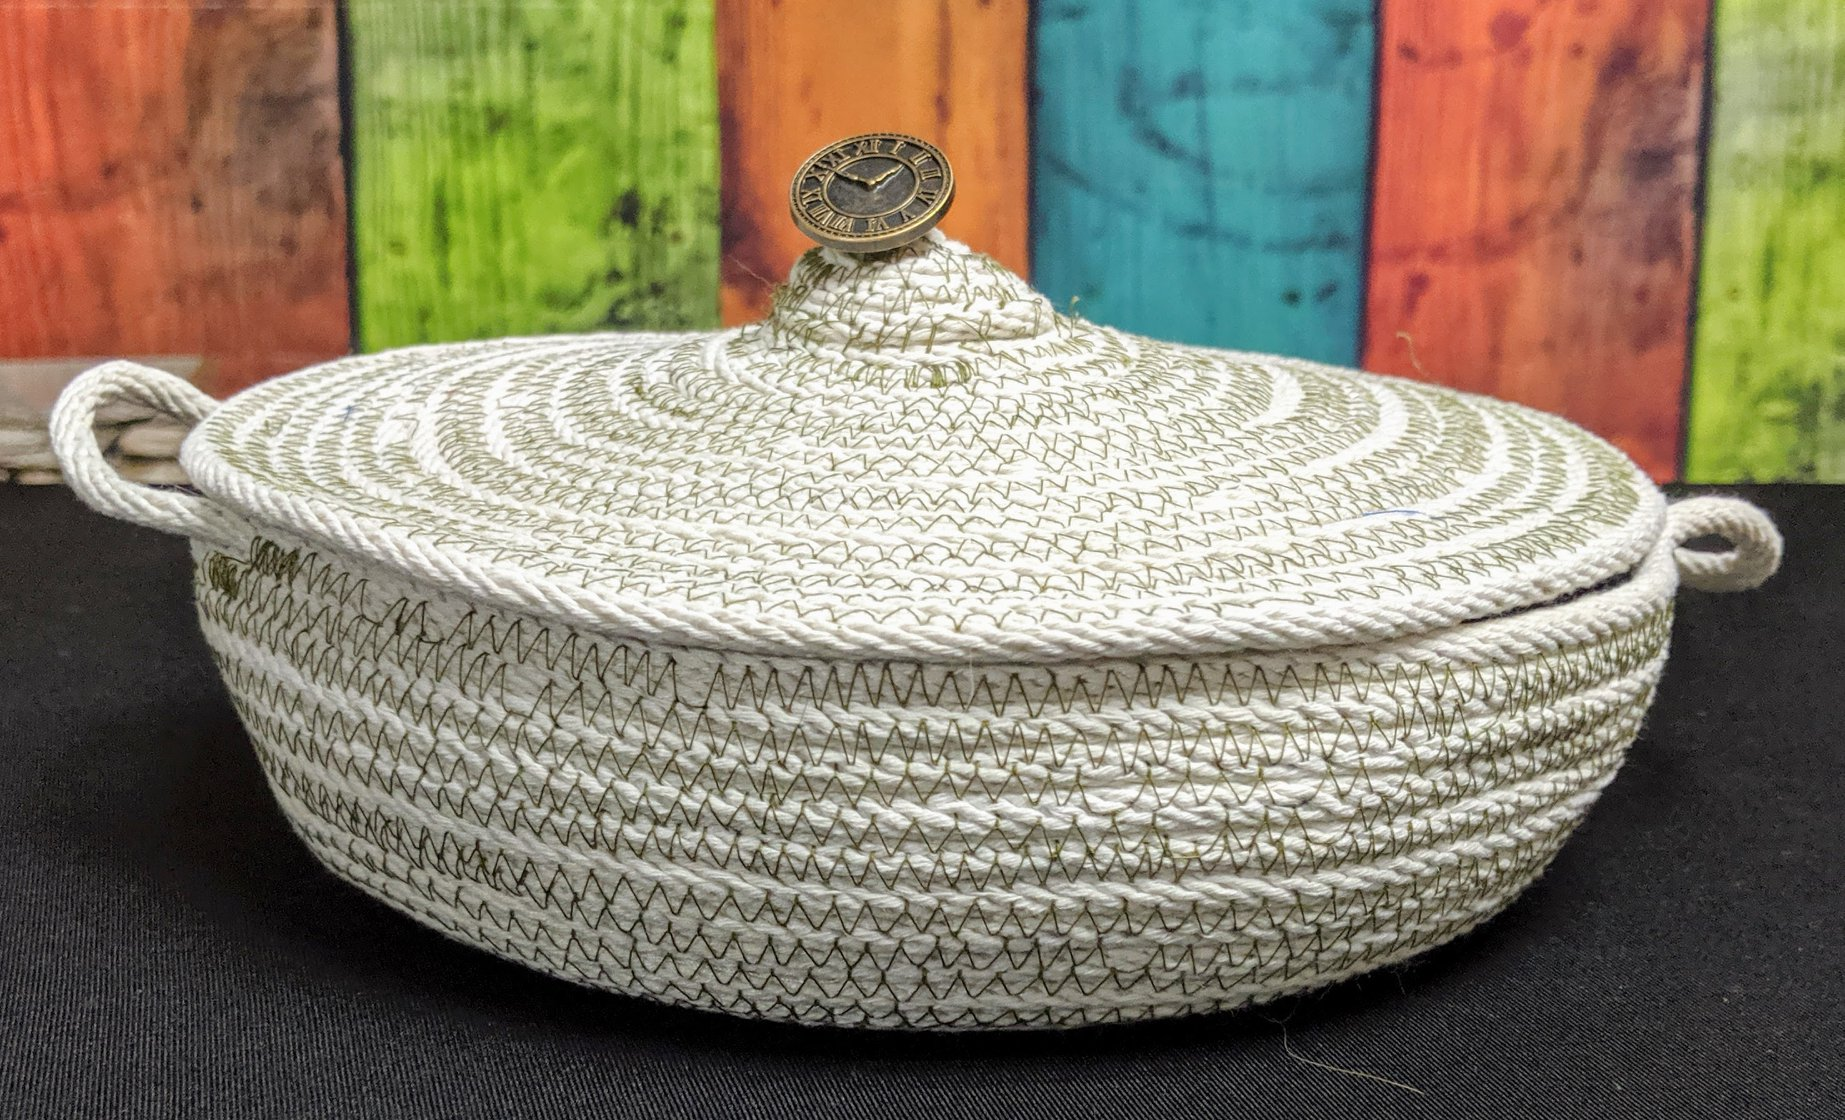 How to Make Rope Bowls and Bags